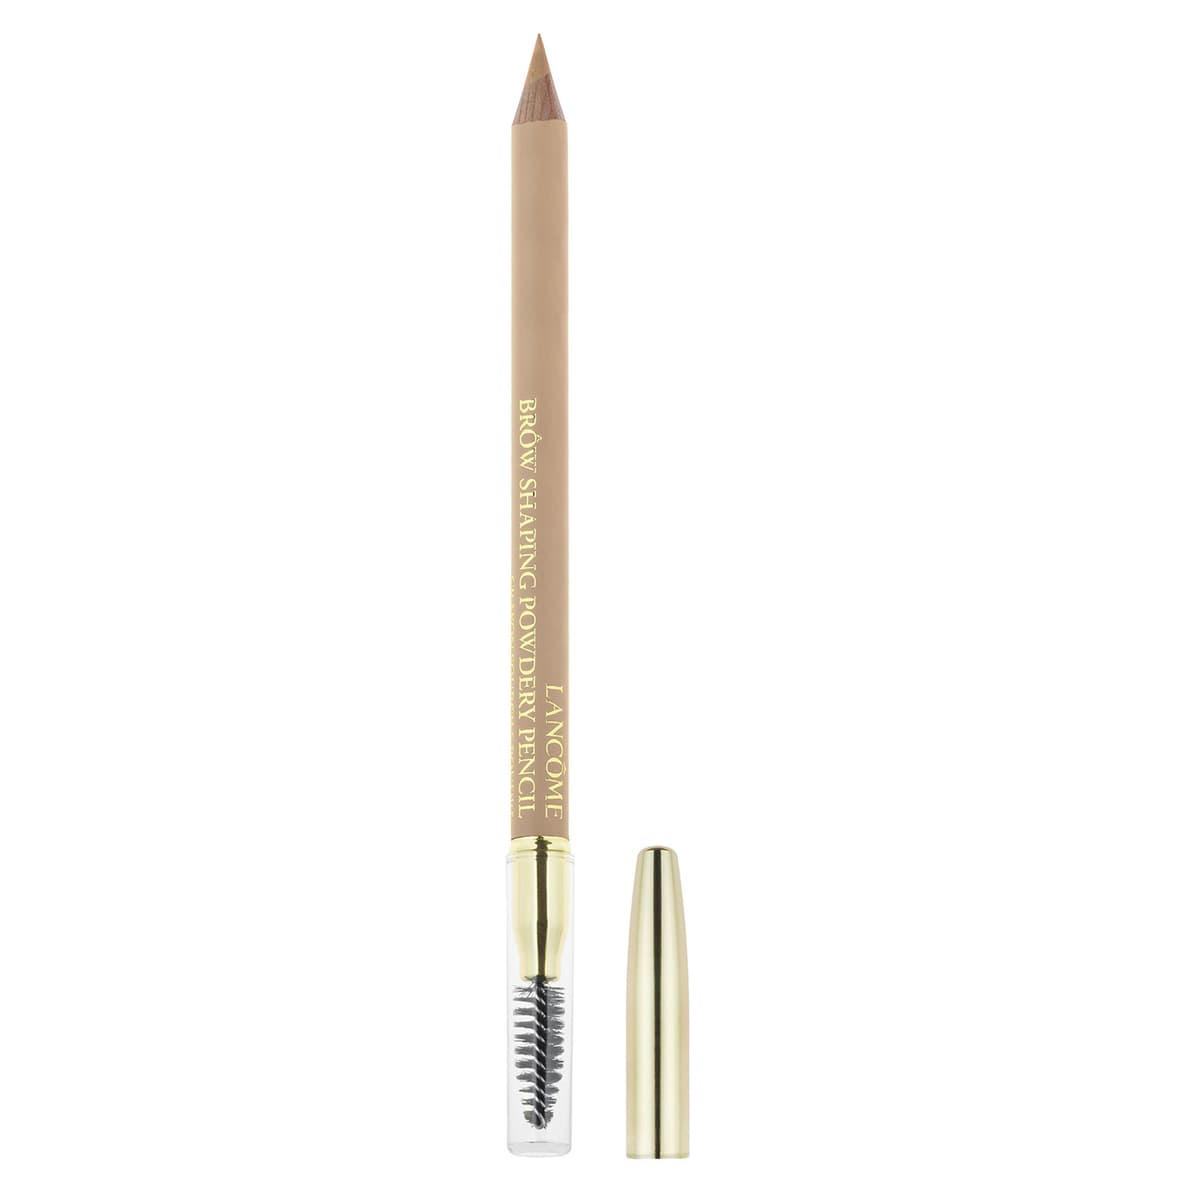 Lancome Brow Shaping Powdery Pencil Blonde 01